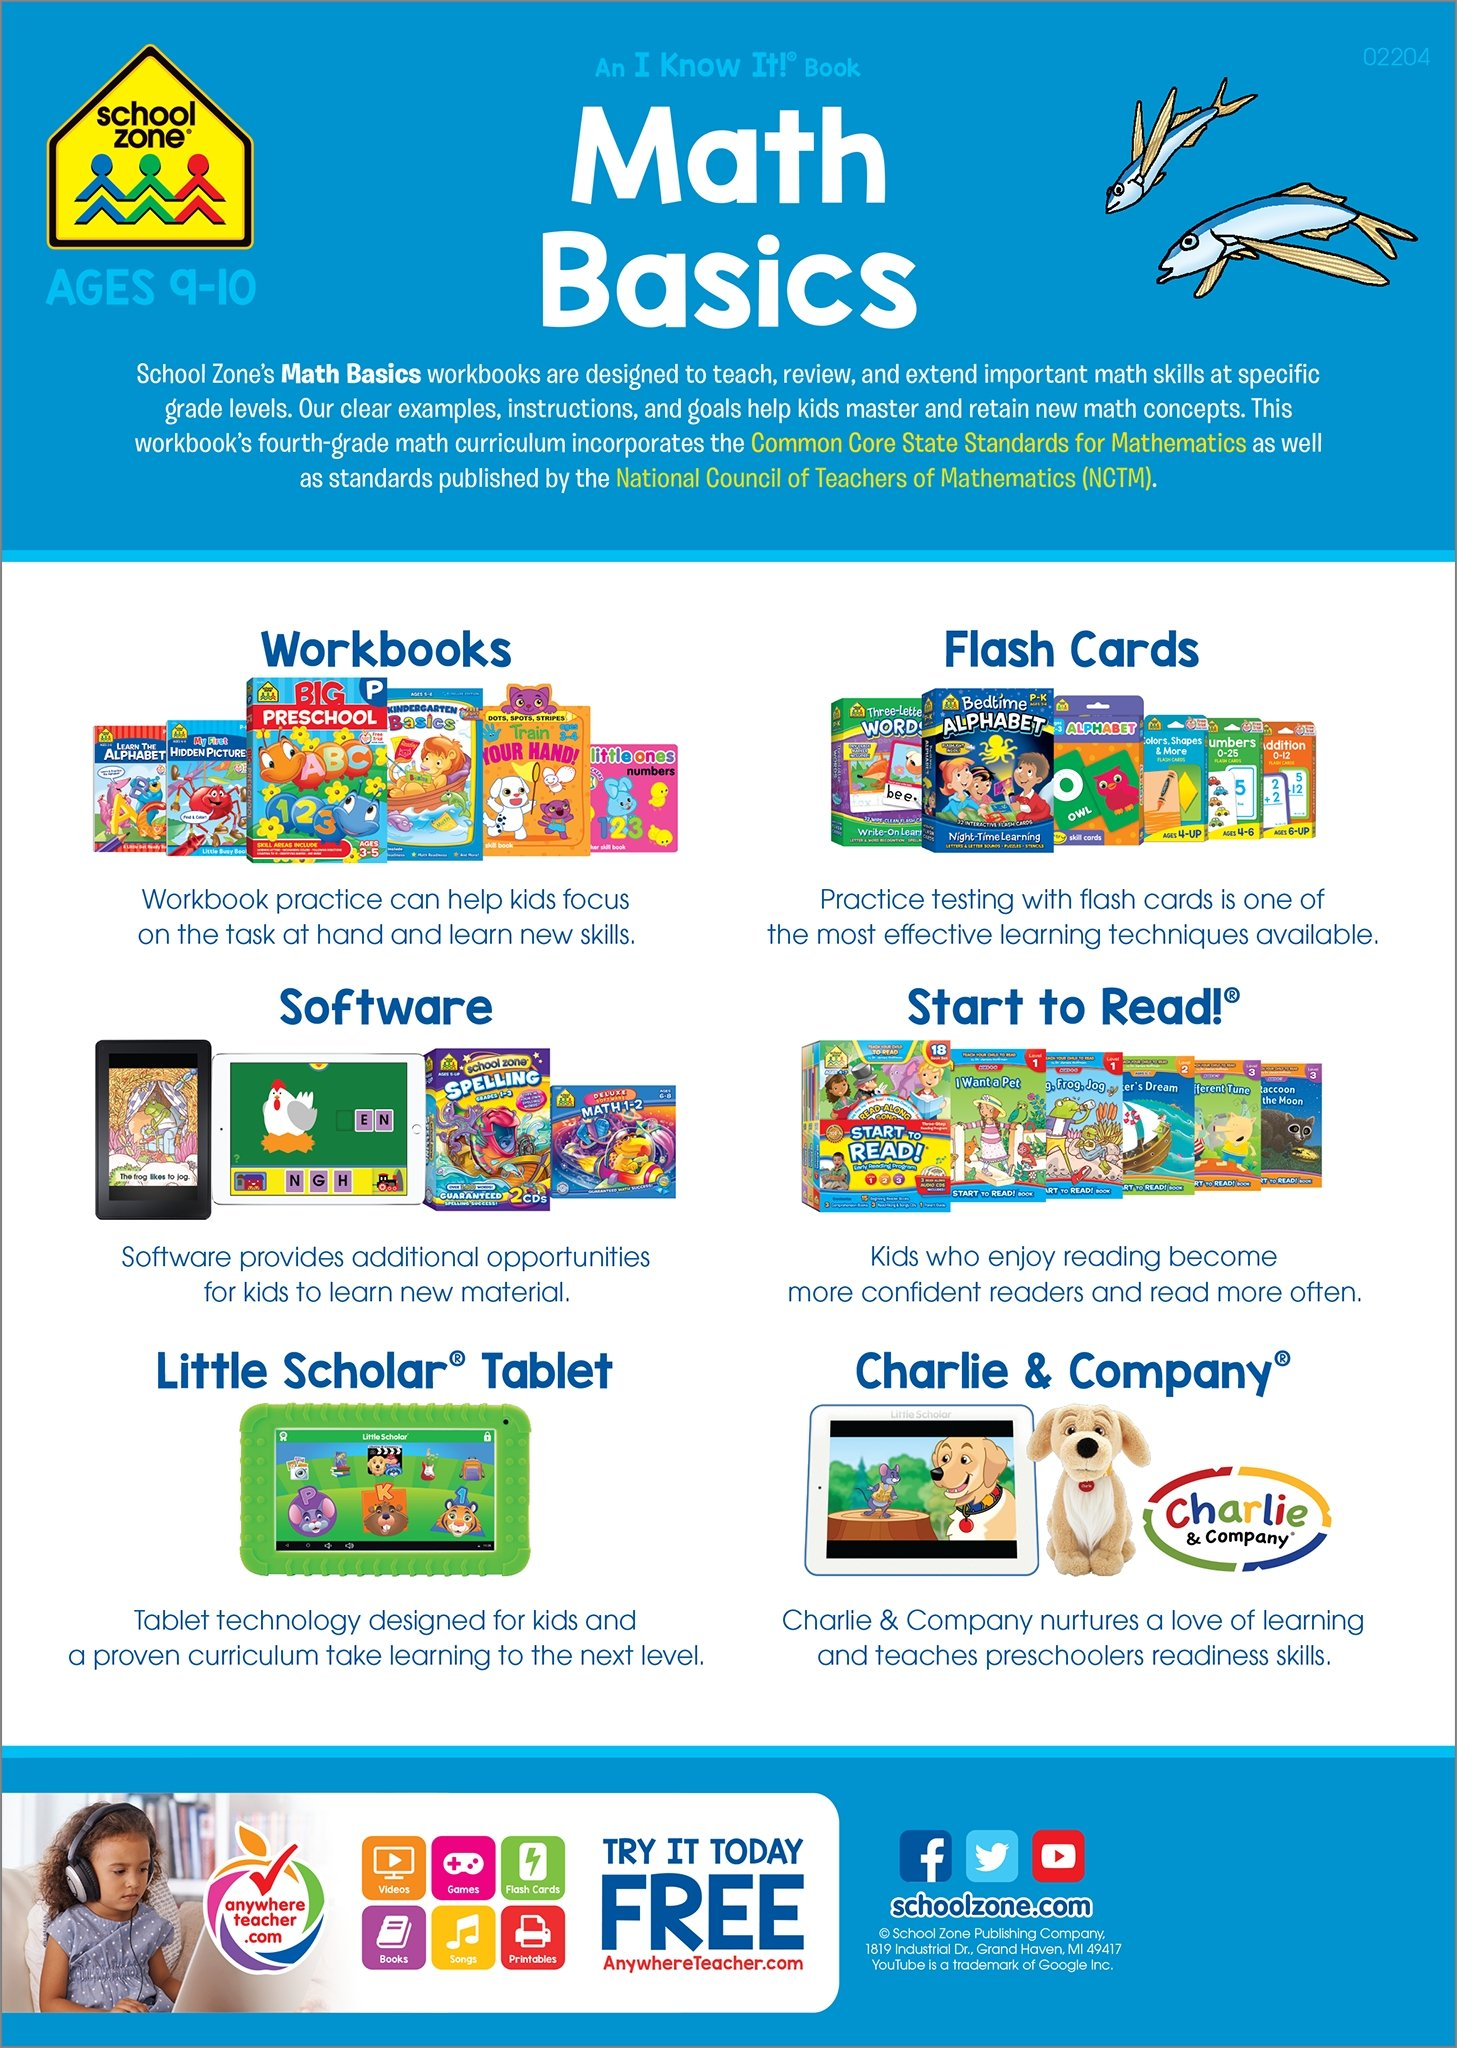 Math Basics 4 Deluxe Edition Workbook (An I Know It! Book): Barbara ...